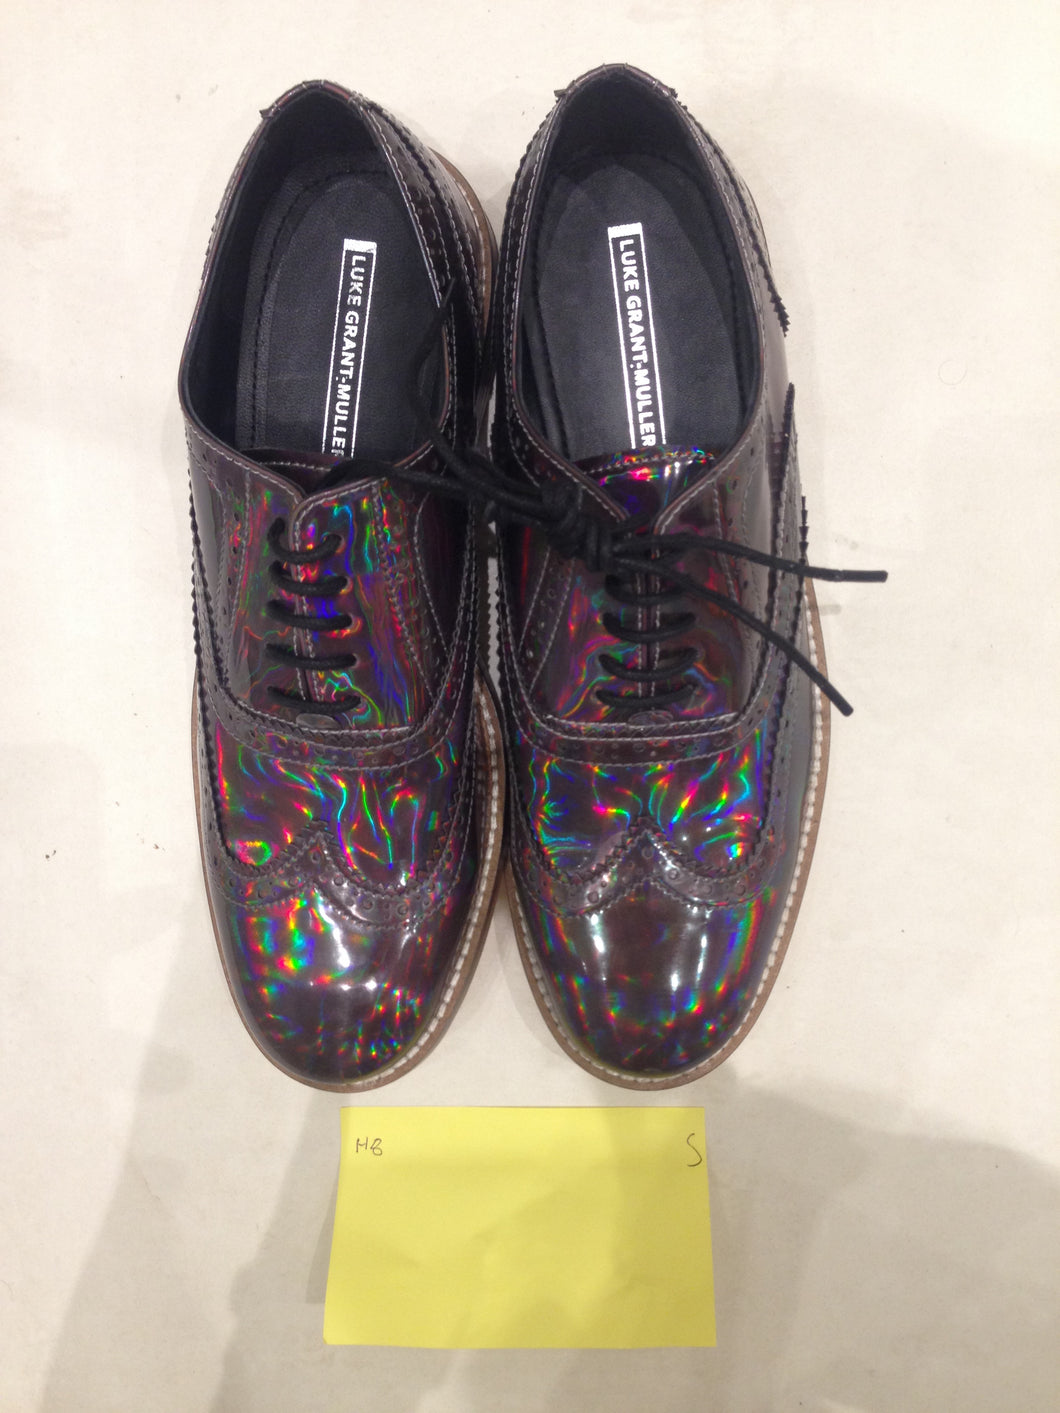 Ladies 10.5 Gents 9 US | 8 UK | 43 EU Holographic/Iridescent (sample sale) S